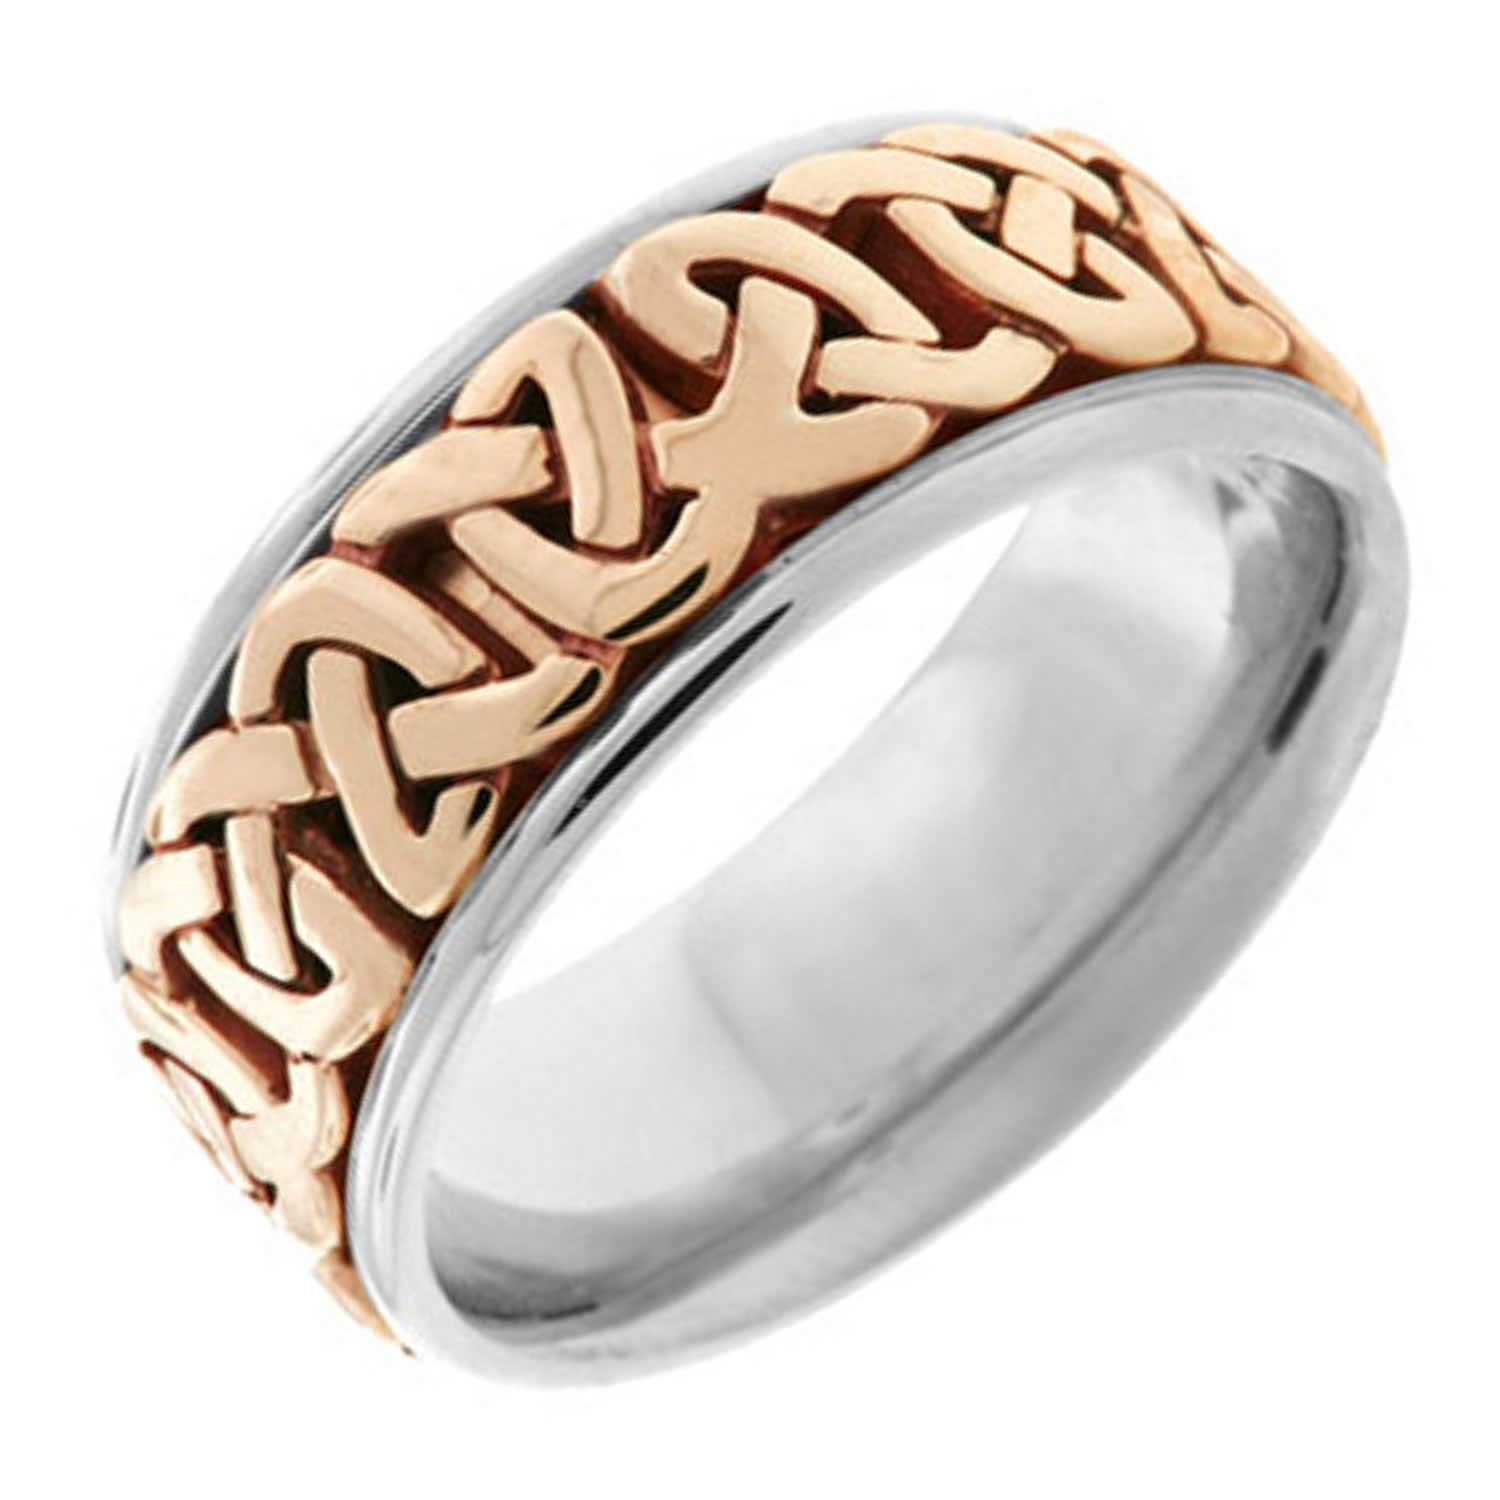 18K Two Tone Gold Celtic Love Knot Men's Comfort Fit Wedding Band (8.5mm) Size-9.5c1